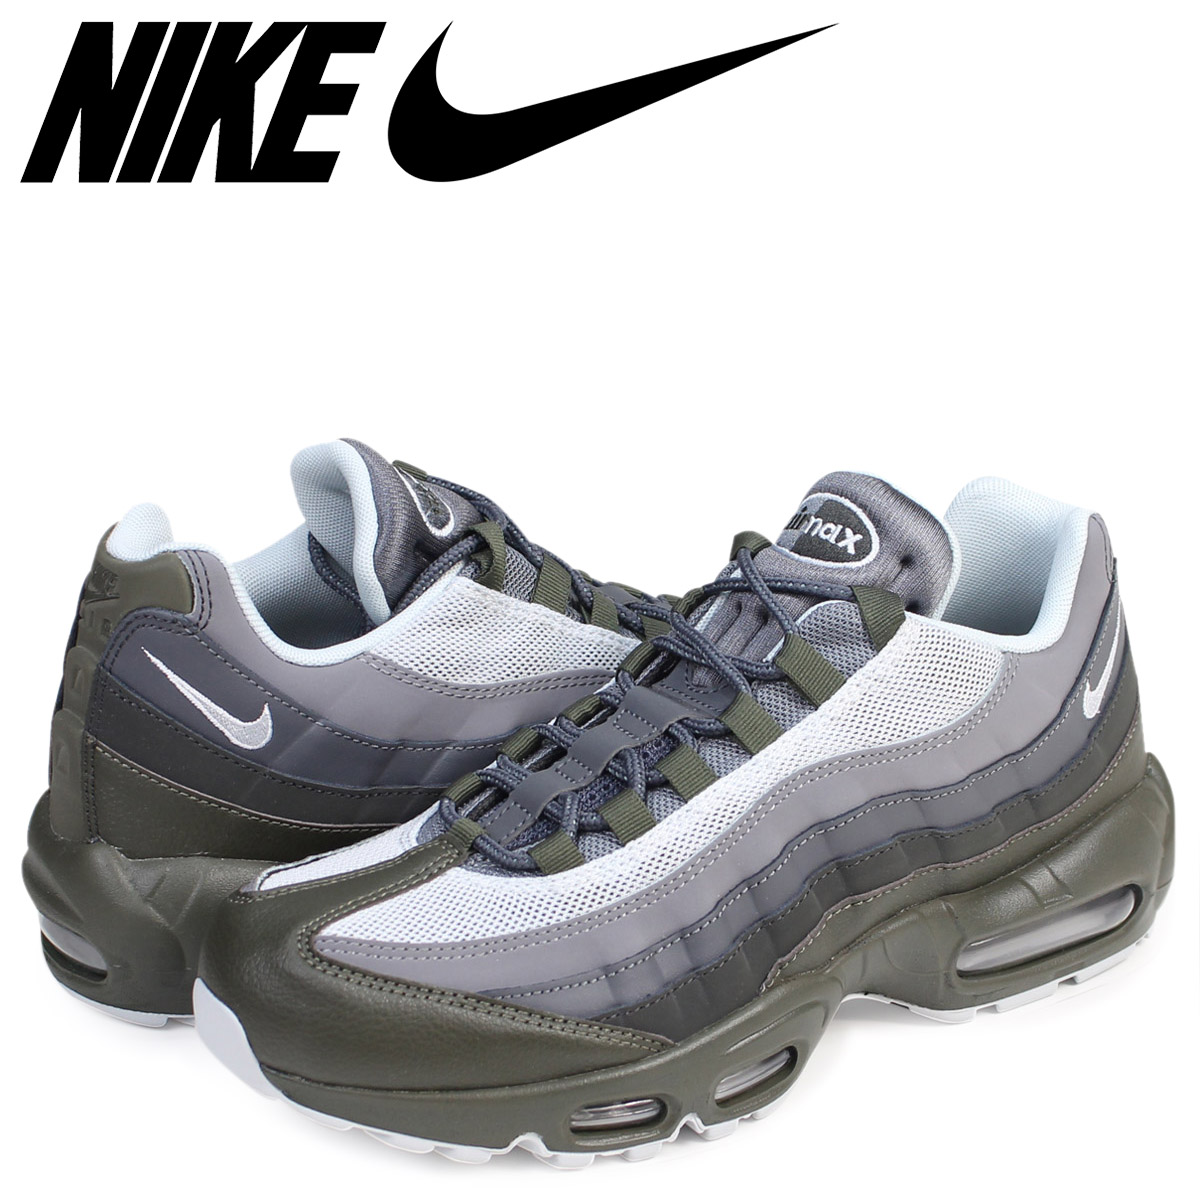 new product b9b40 e848b Nike NIKE Air Max 95 essential sneakers AIR MAX 95 ESSENTIAL 749,766-302  men s shoes khaki  7 14 Shinnyu load